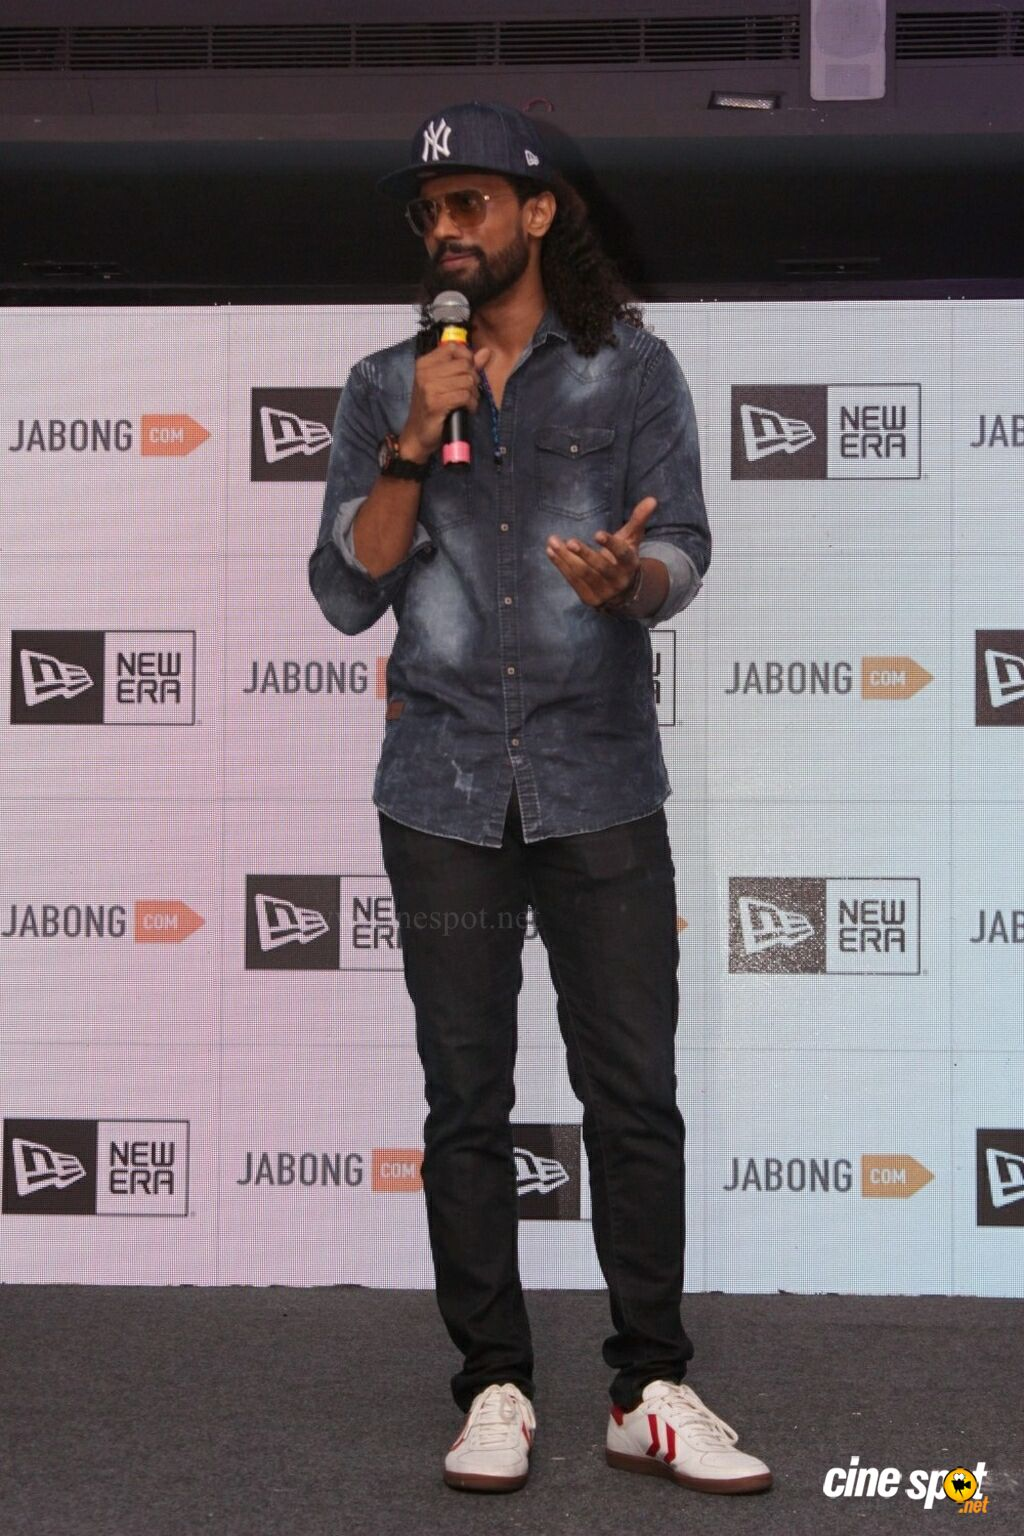 Jabong International Sports Brand Launch (1)